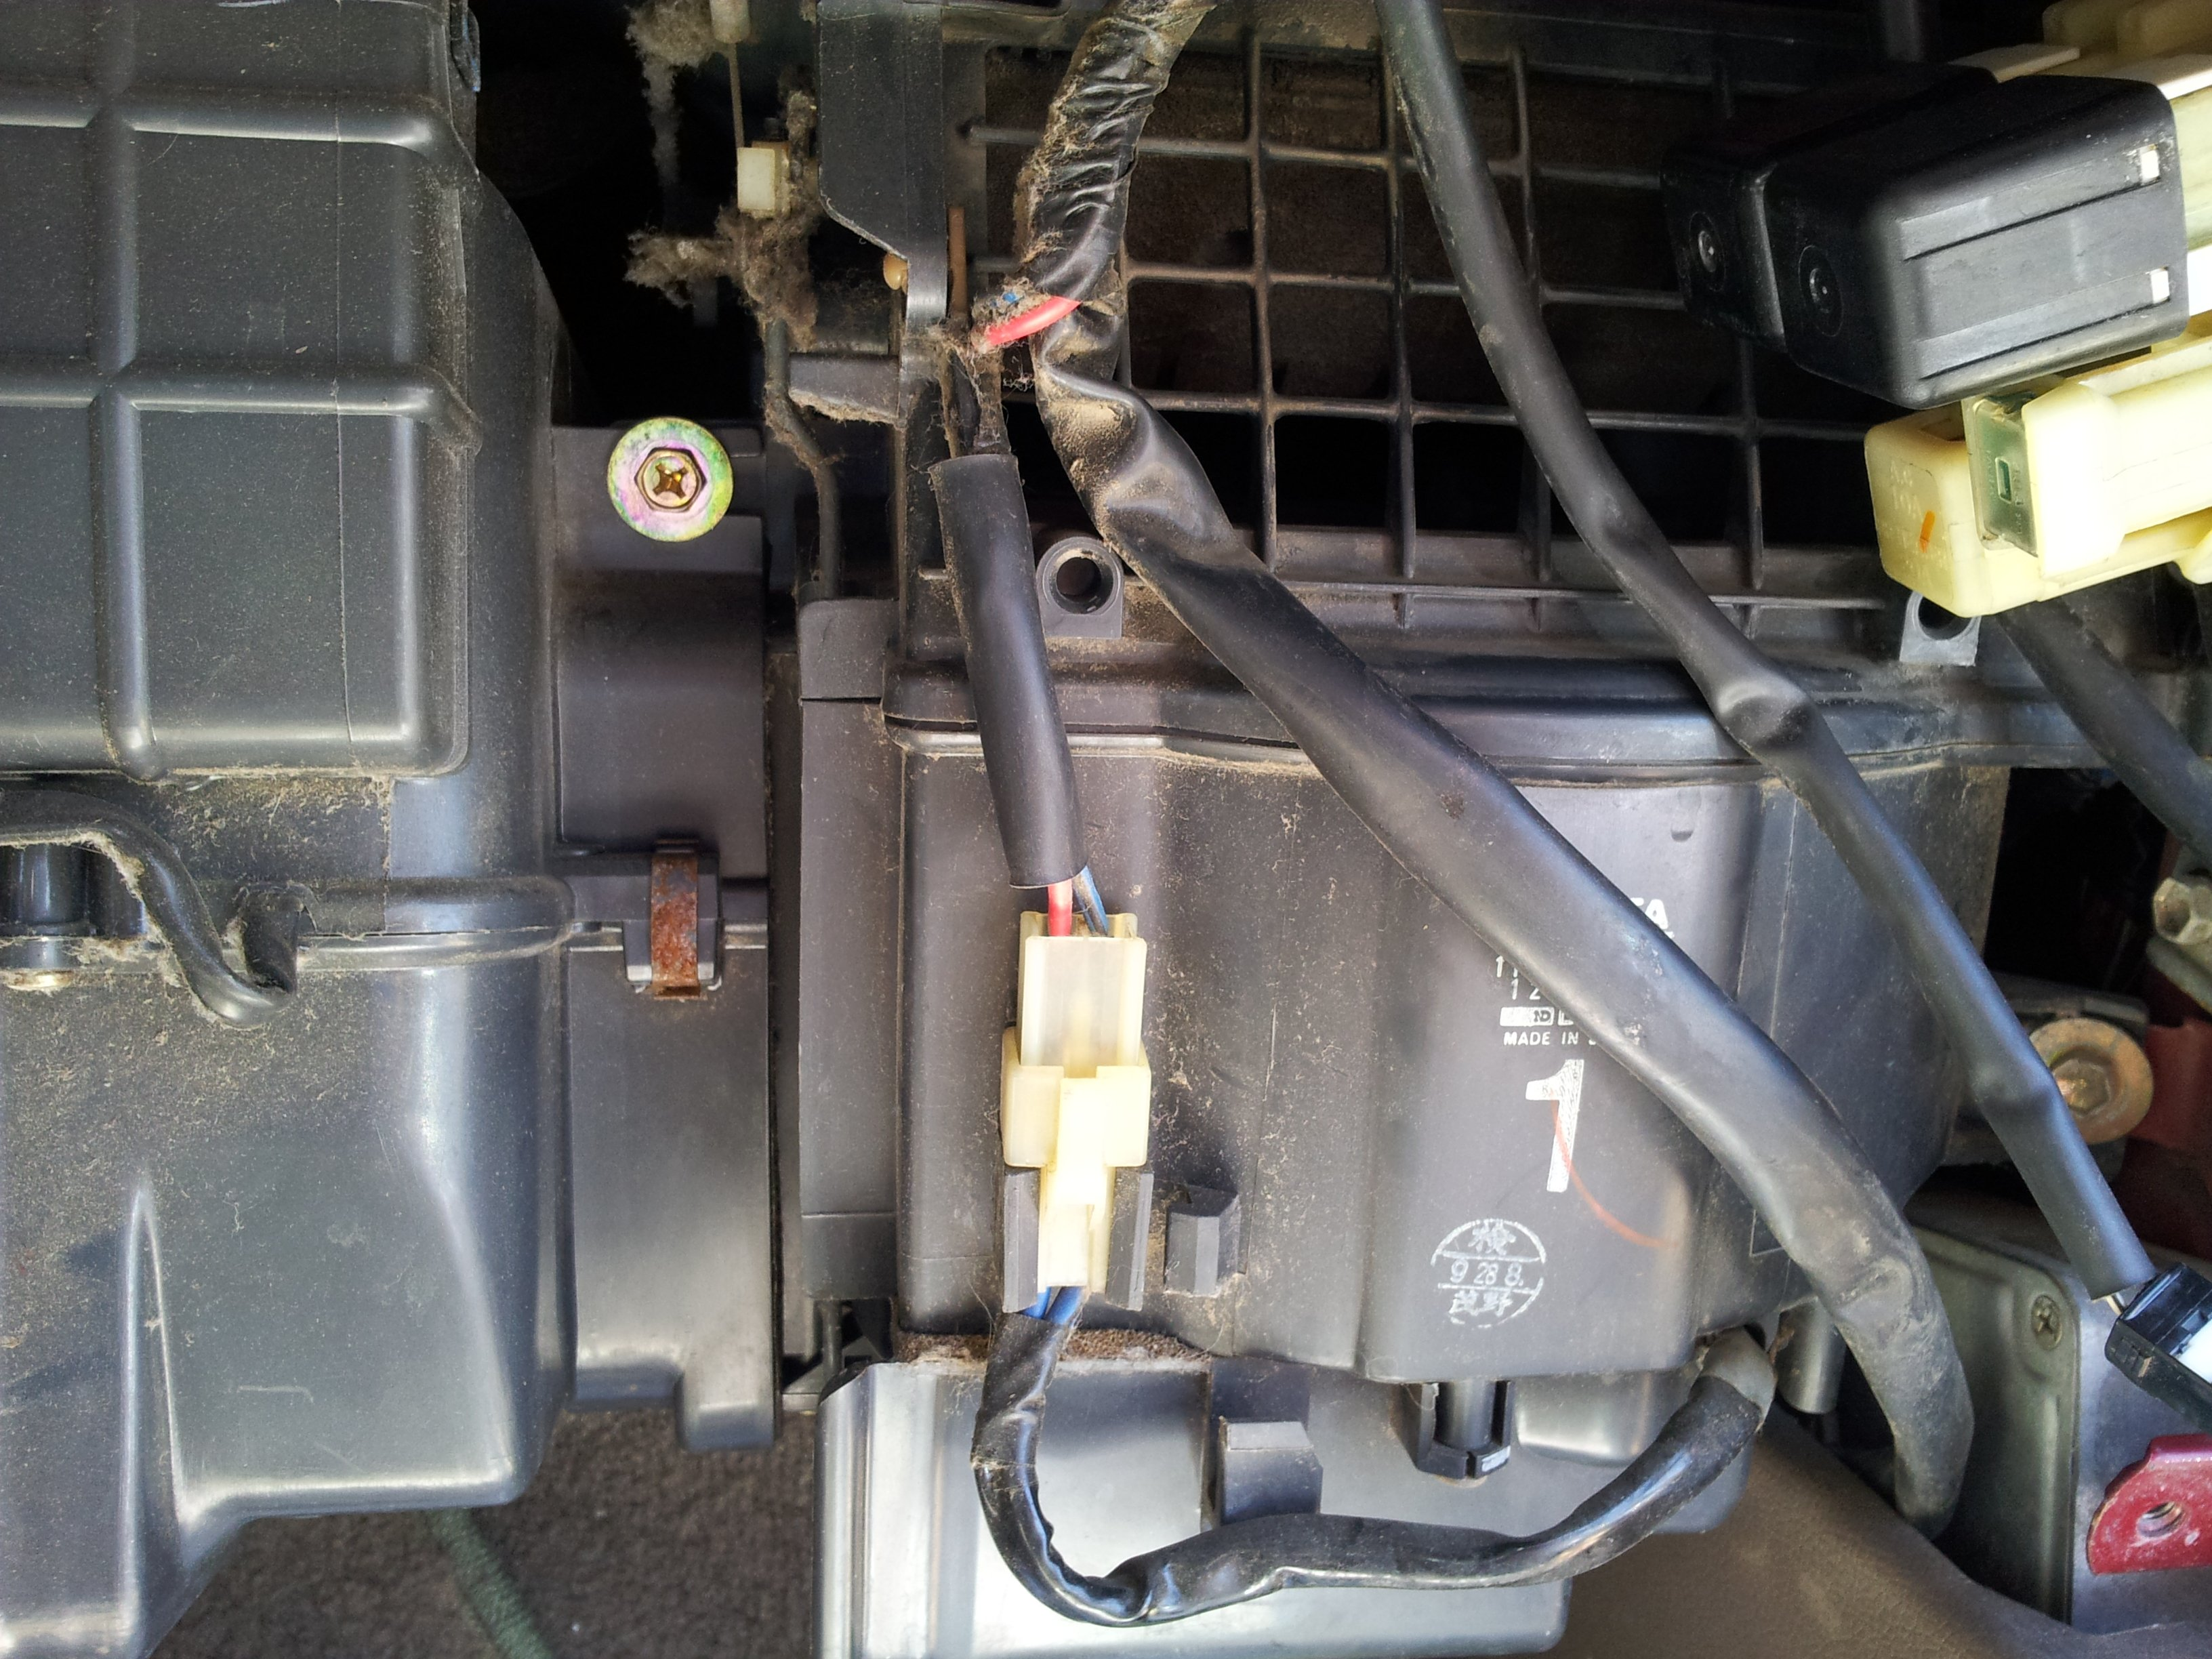 40 Amp Fuse Relay Panel Smart Wiring Diagrams Waterproof Box 1995 Toyota 4 Heat And Ac Not Working It Just Quit All At Universal Ford Fuel Pump